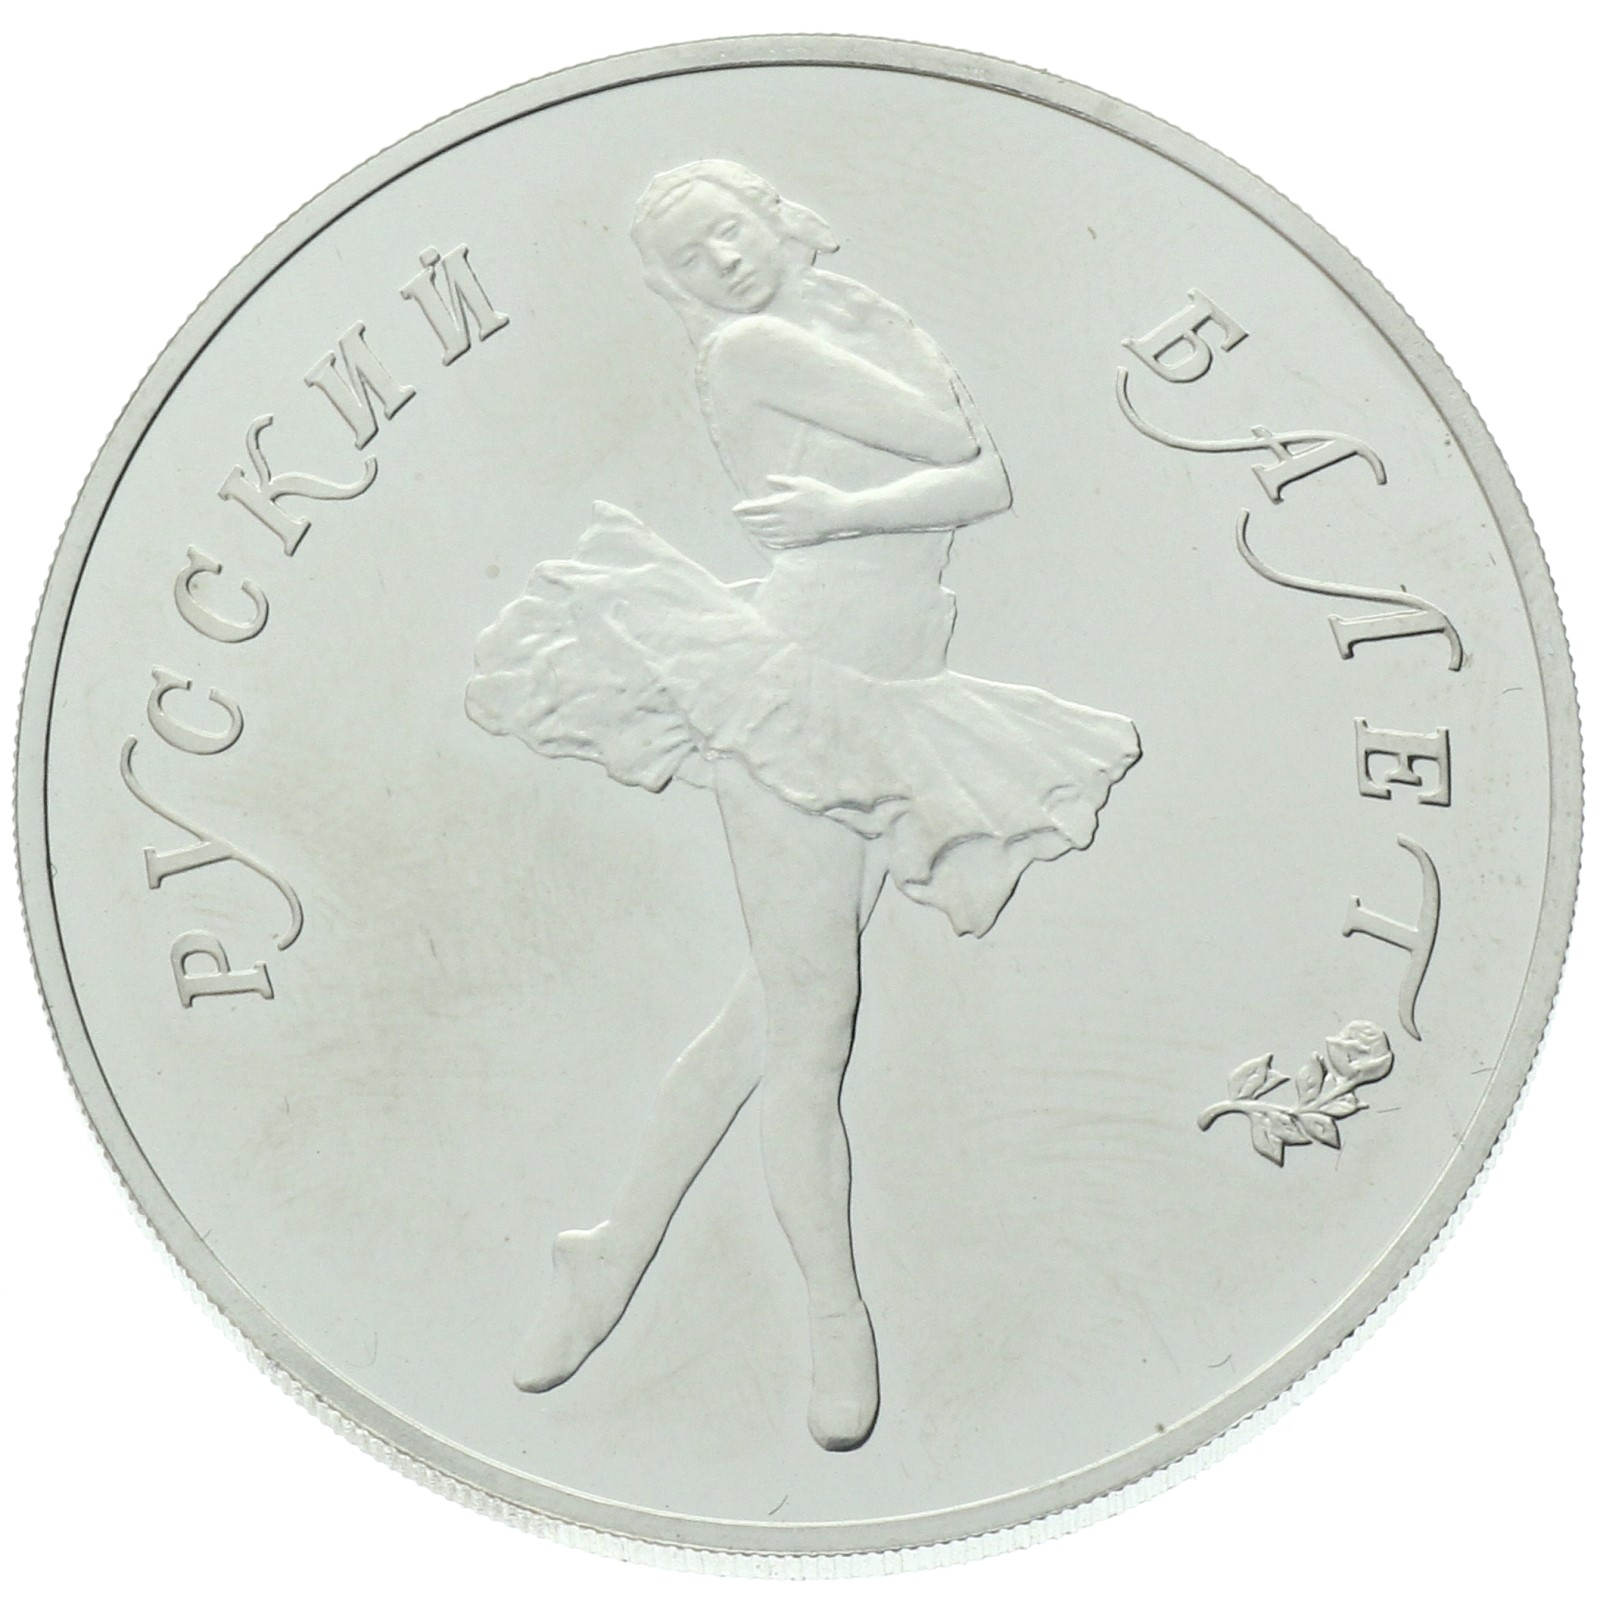 Soviet Union - 25 rubles - 1989 - Russian Ballet